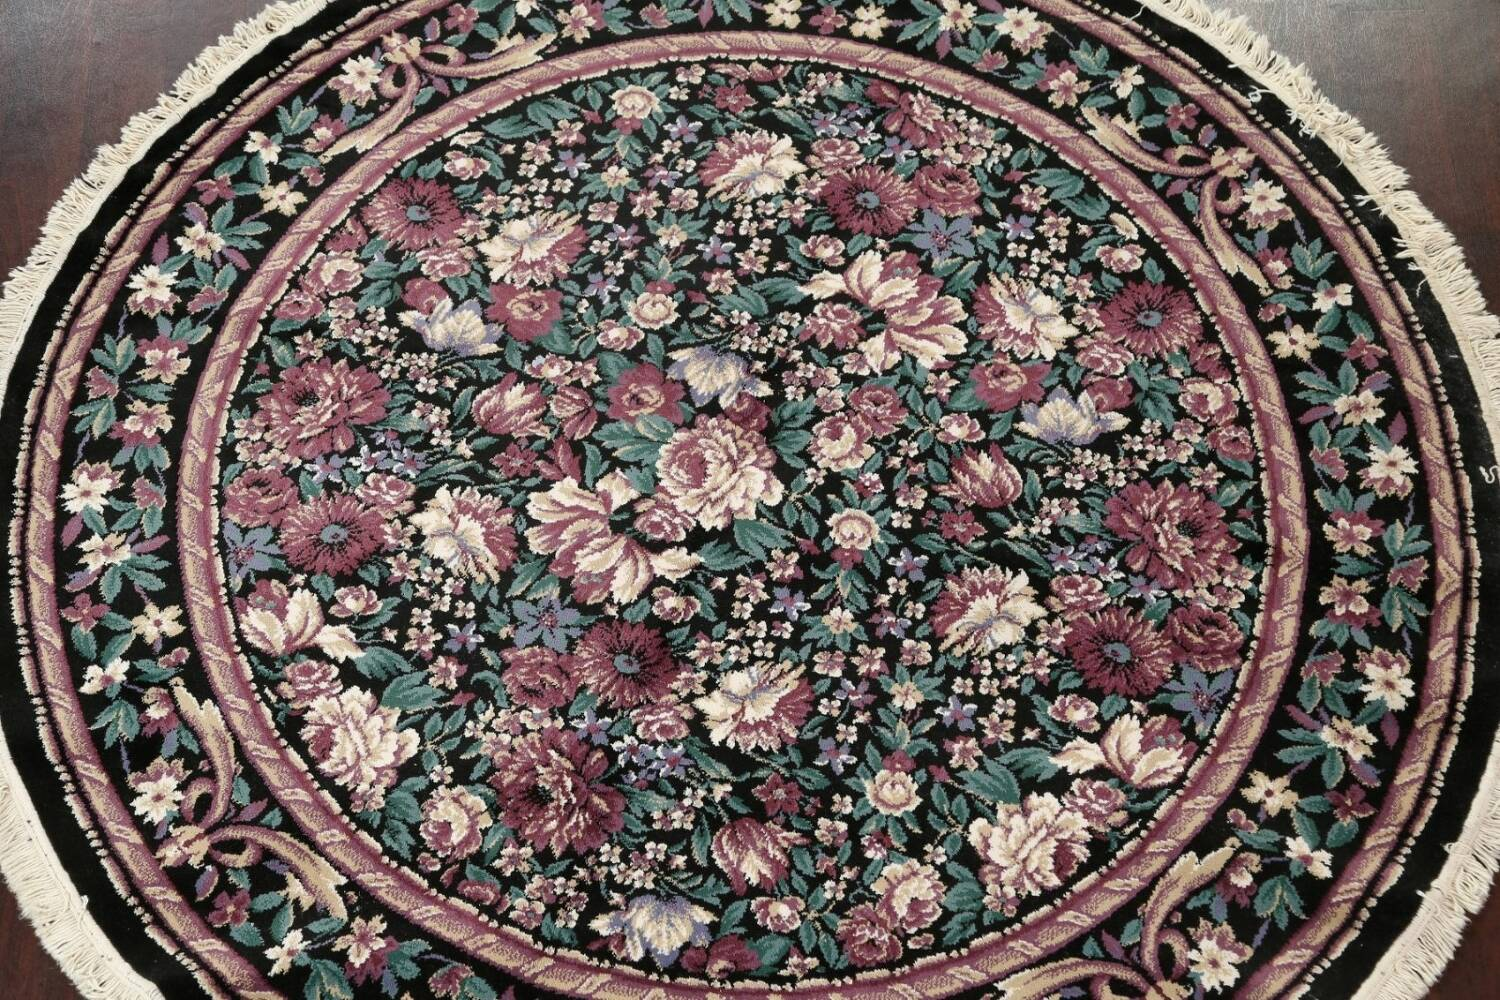 Floral Aubusson Round Area Rug 8x8 image 3